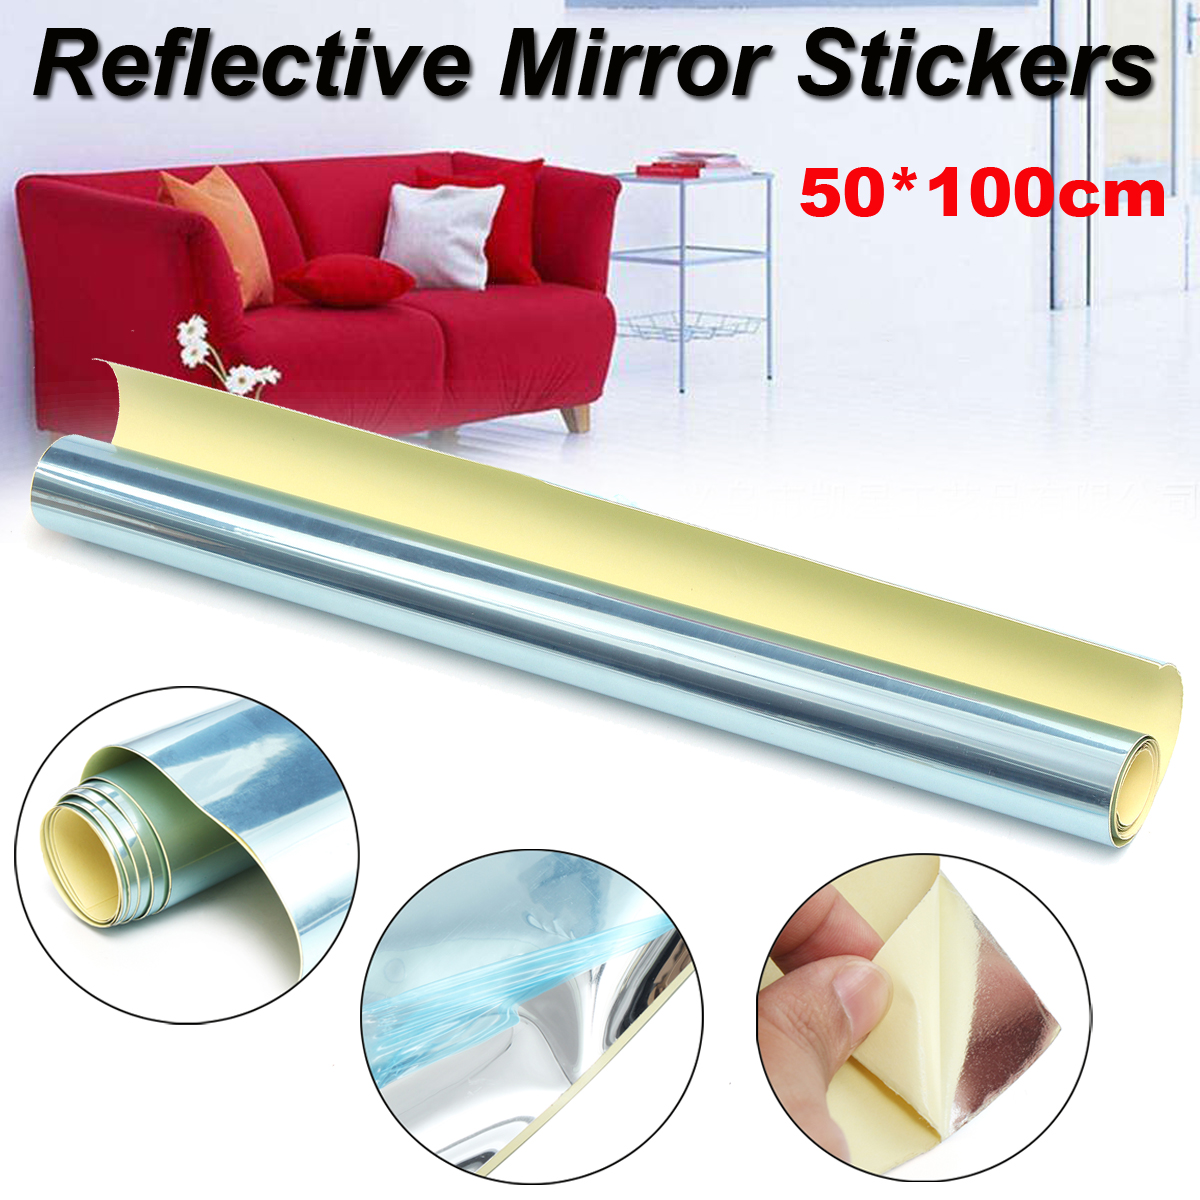 50cm×100cm Reflective Mirrors Stickers Wall Decal Self-adhesive For Bedroom Living Room